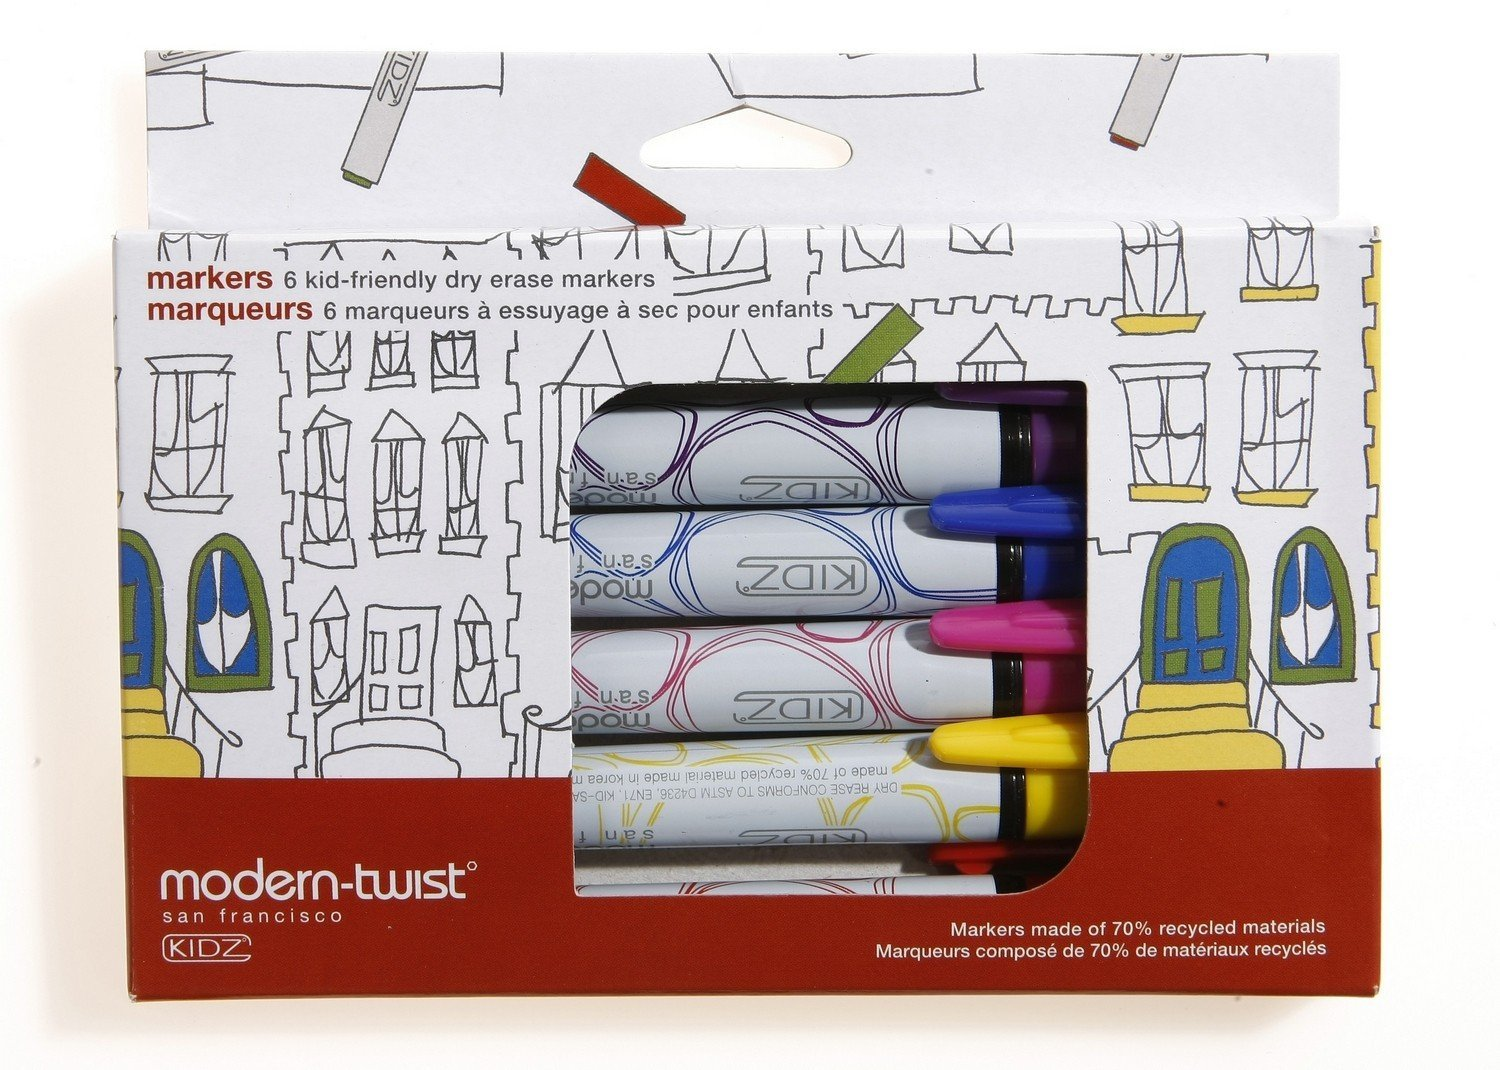 modern-twist Kids Mark-Mat Silicone Coloring Placemat with 6 Dry-Erase Markers, Space Animals by modern-twist (Image #2)